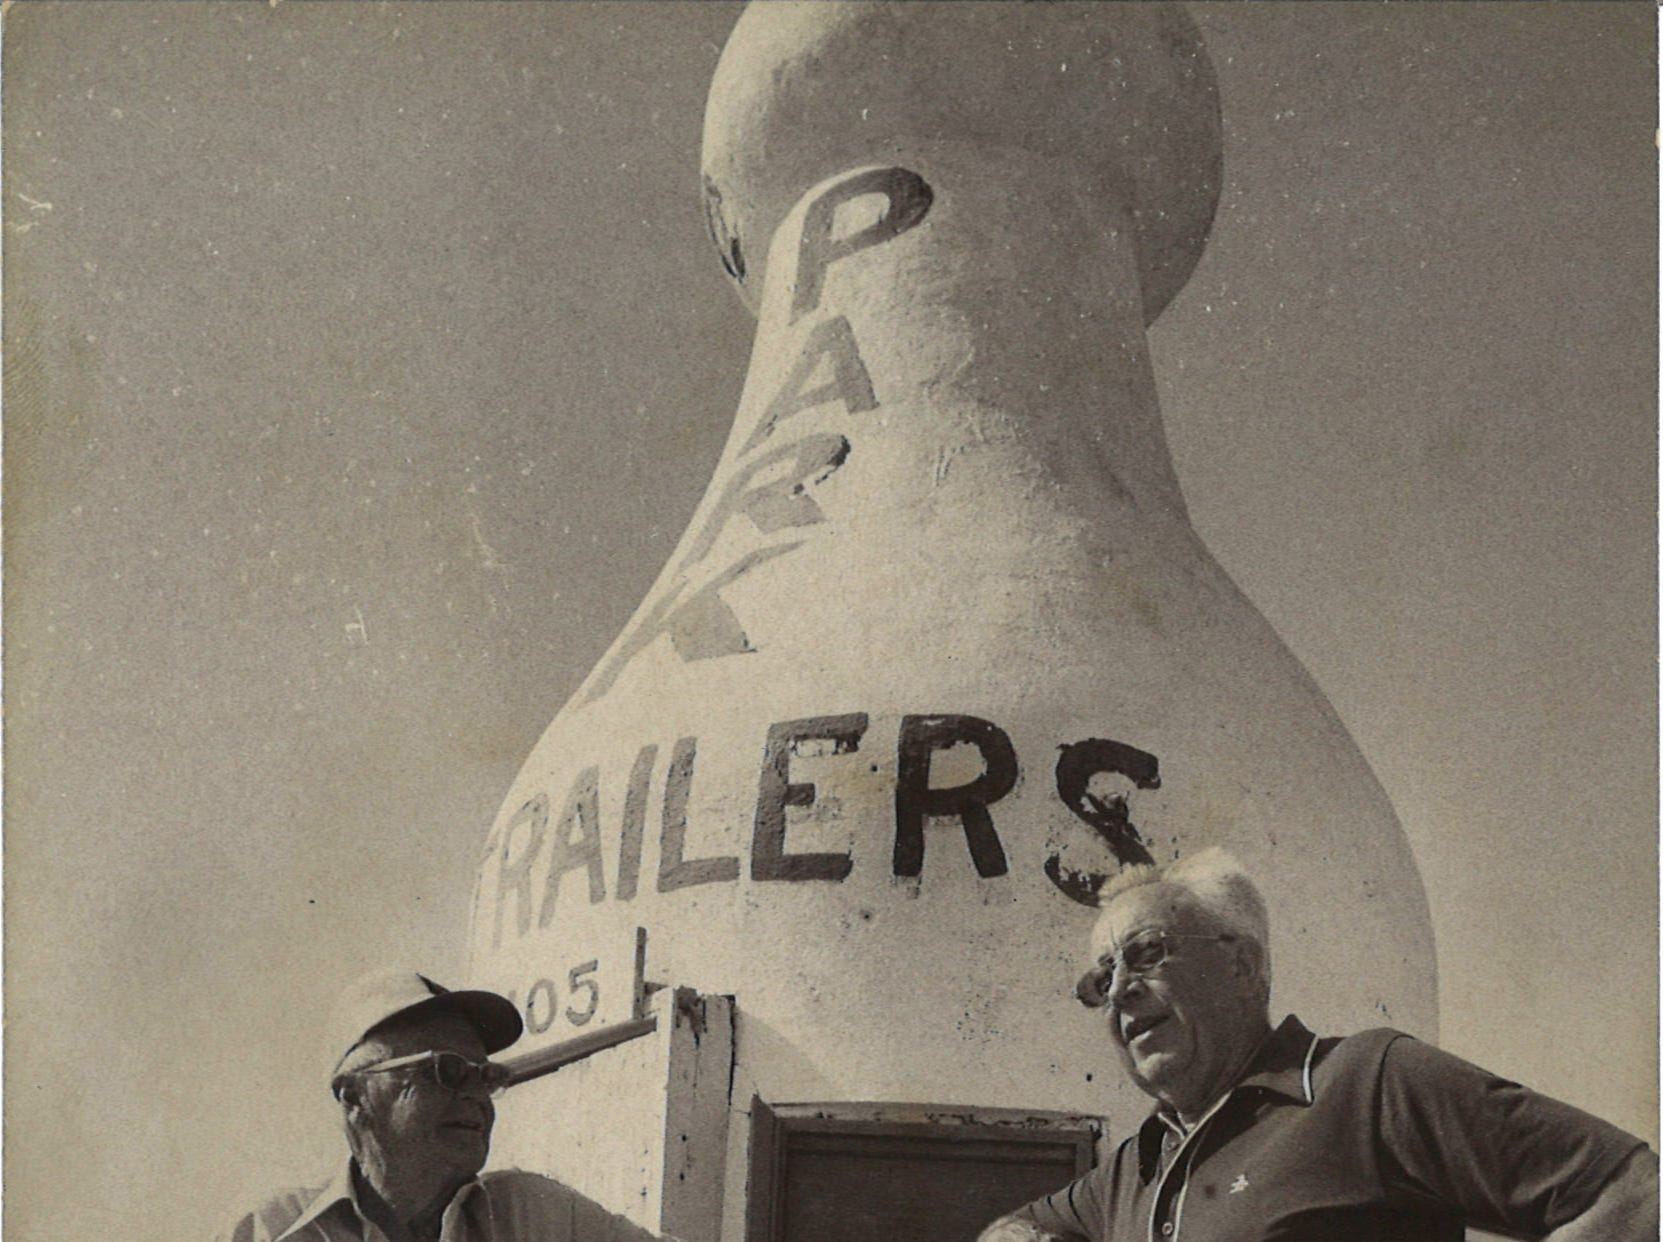 Winter Texans Jerome Quam of Wisconsin (right) and Bernard Mercer of Iowa (left) lounge next to the large cement milk bottle painted to advertise Park Trailers at 4105 Timon Blvd on Corpus Christi's North Beach in April 1976.